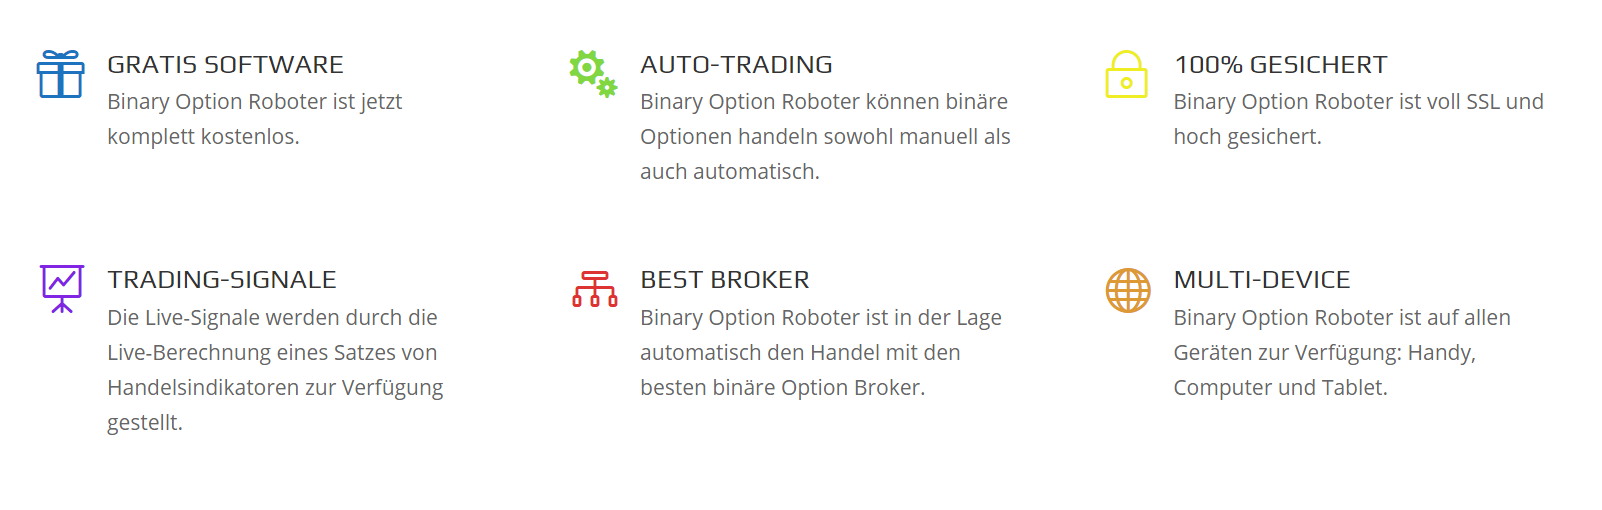 fireshot-capture-68-binary-option-robot-i-automatisiert_-https___www-binary-option-robot-com_de_